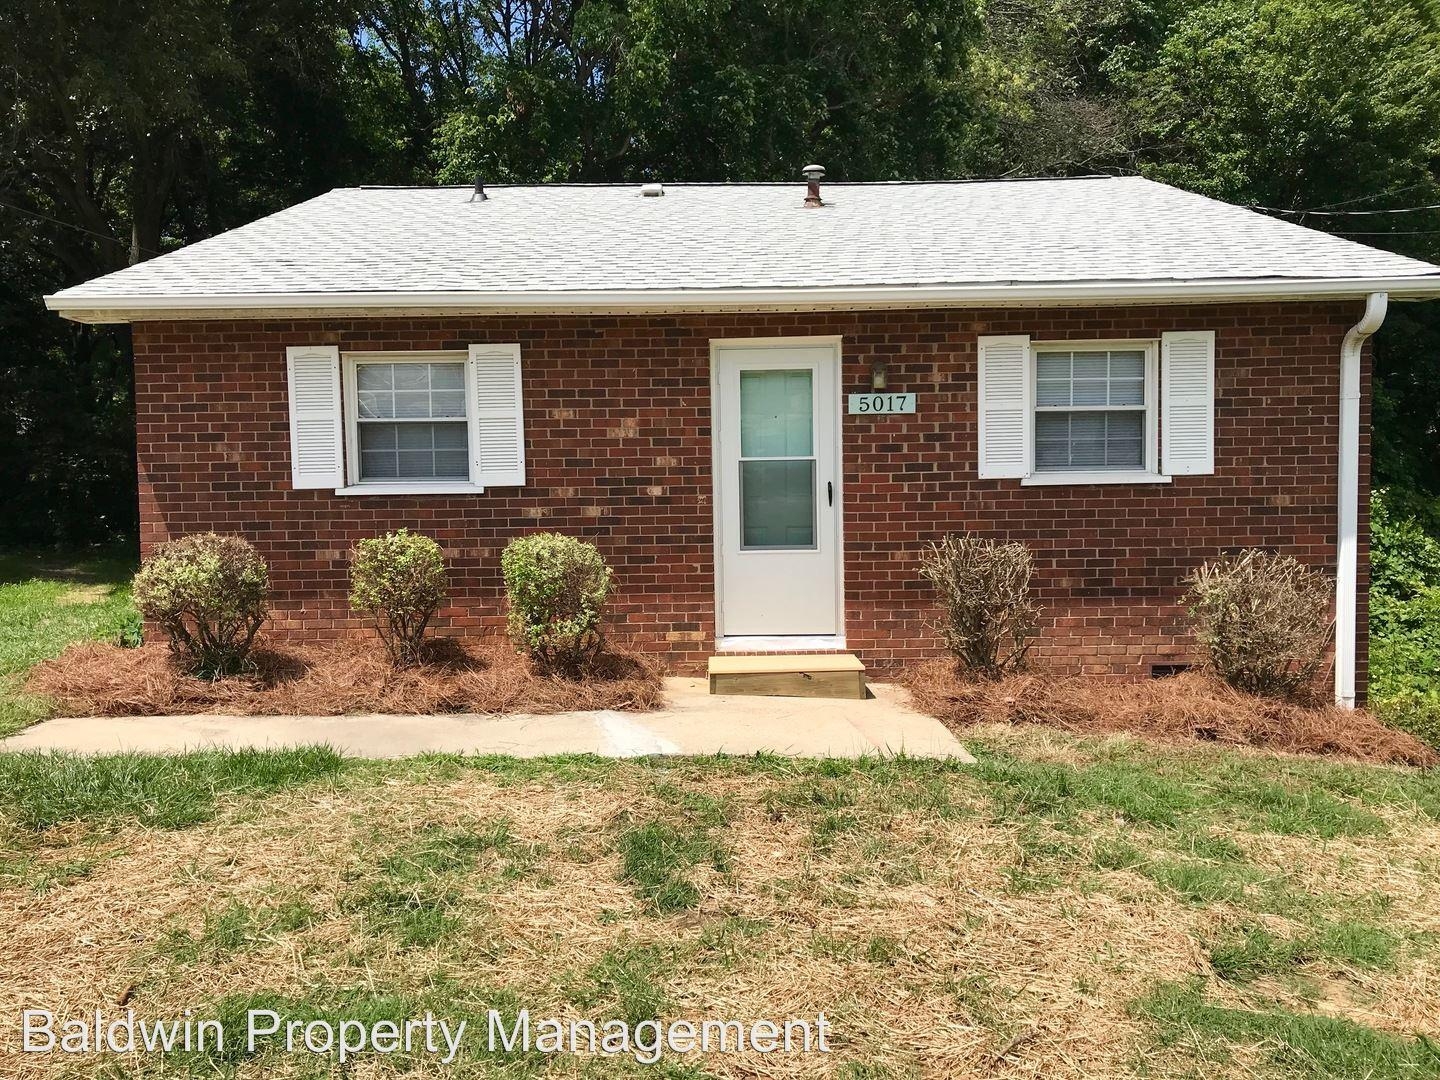 5017 Lansing Dr, Winston Salem, NC 27105 For Rent | Trulia